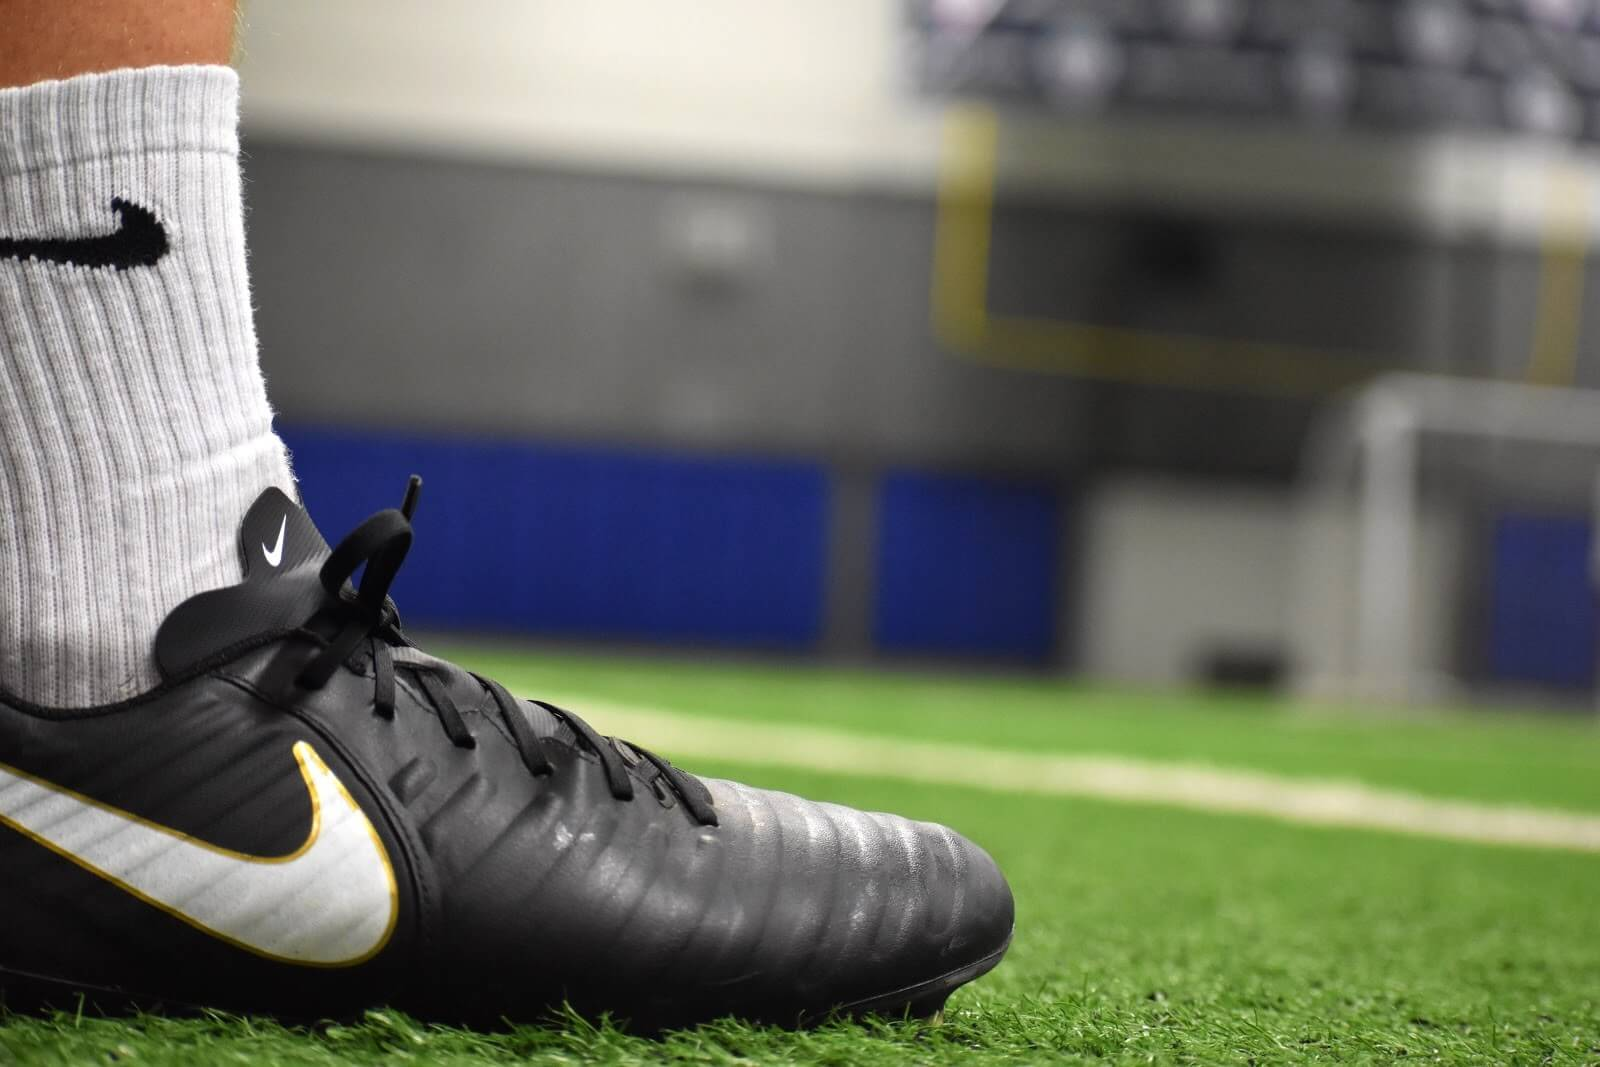 Soccer Cleat on Turf